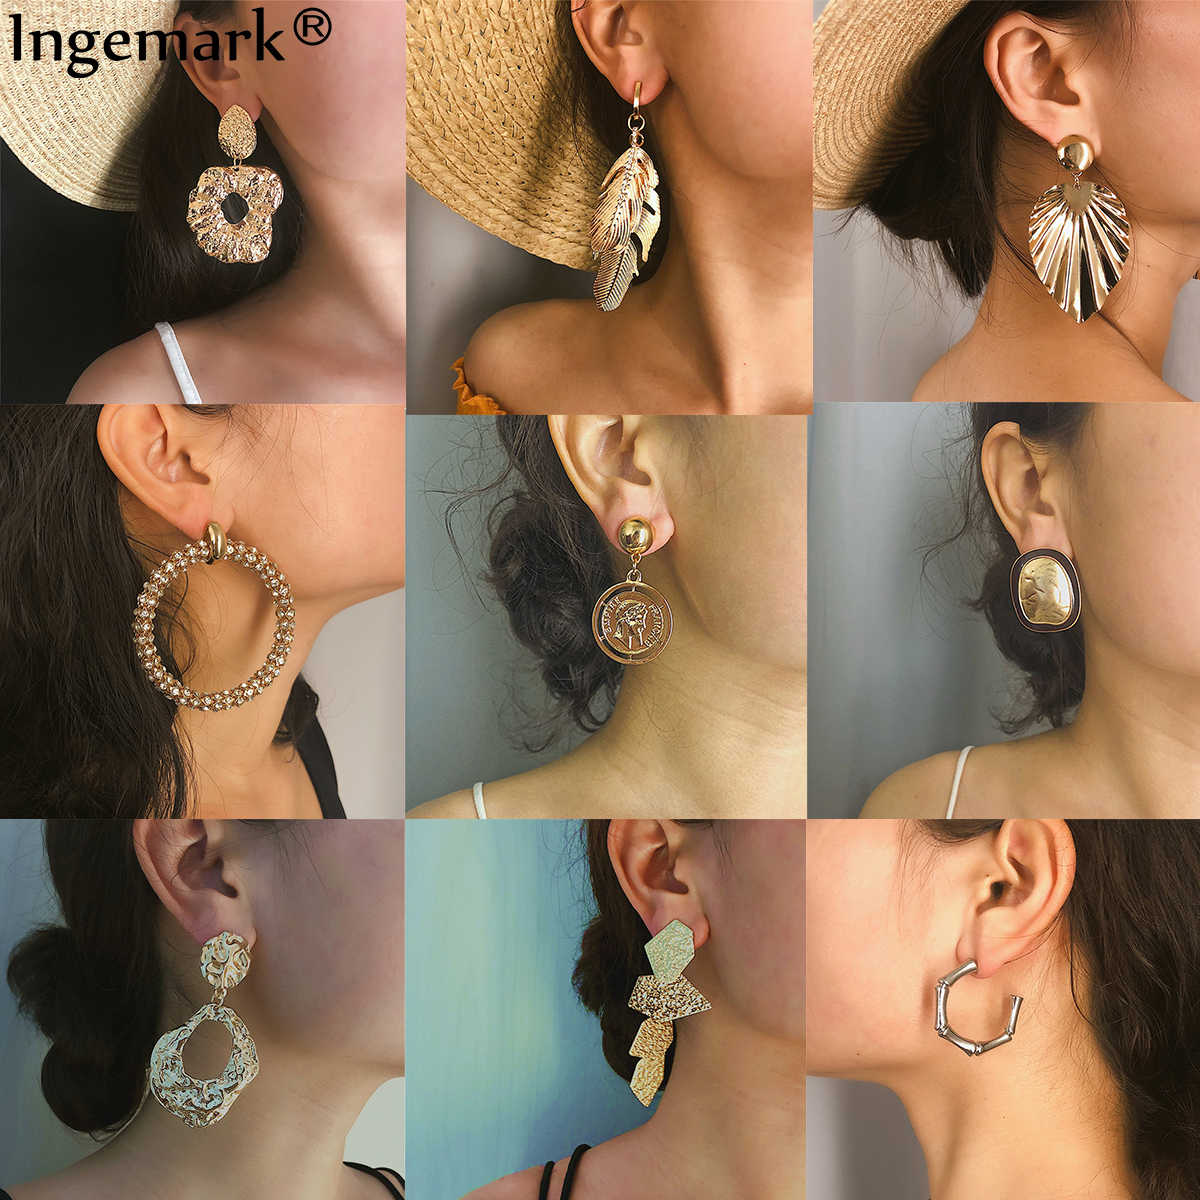 26 Style Vintage ZA Earrings Large Geometric Drop Dangle Earring For Women 2019 Wedding Party Punk earring Women Jewelry Brinco